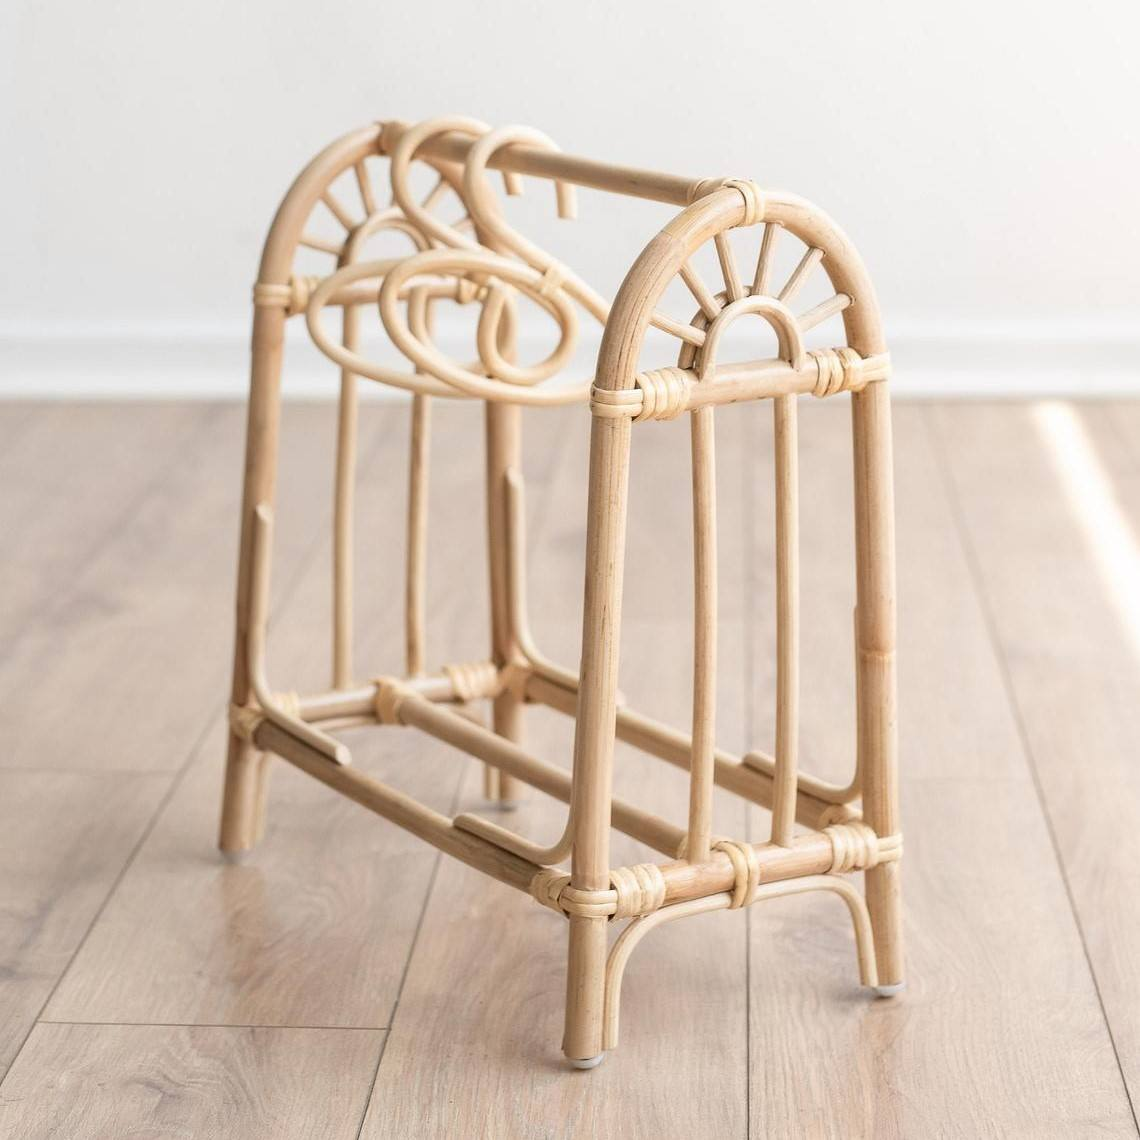 Natural rattan mini clothing rack for dolls from Vietnam